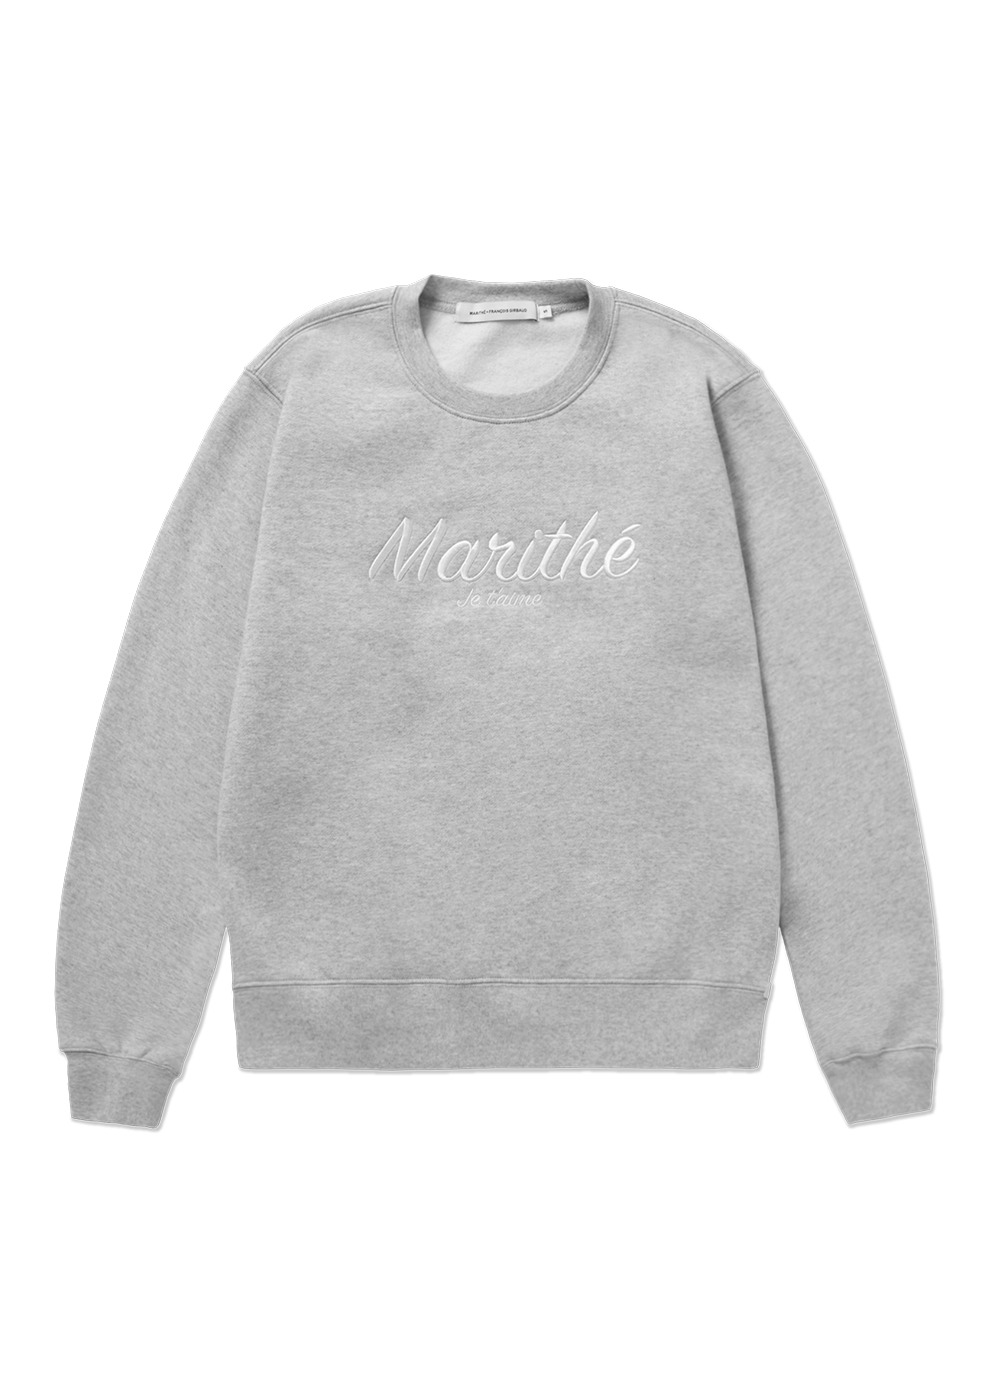 MARITHE MARITHE SWEATSHIRT heather gray